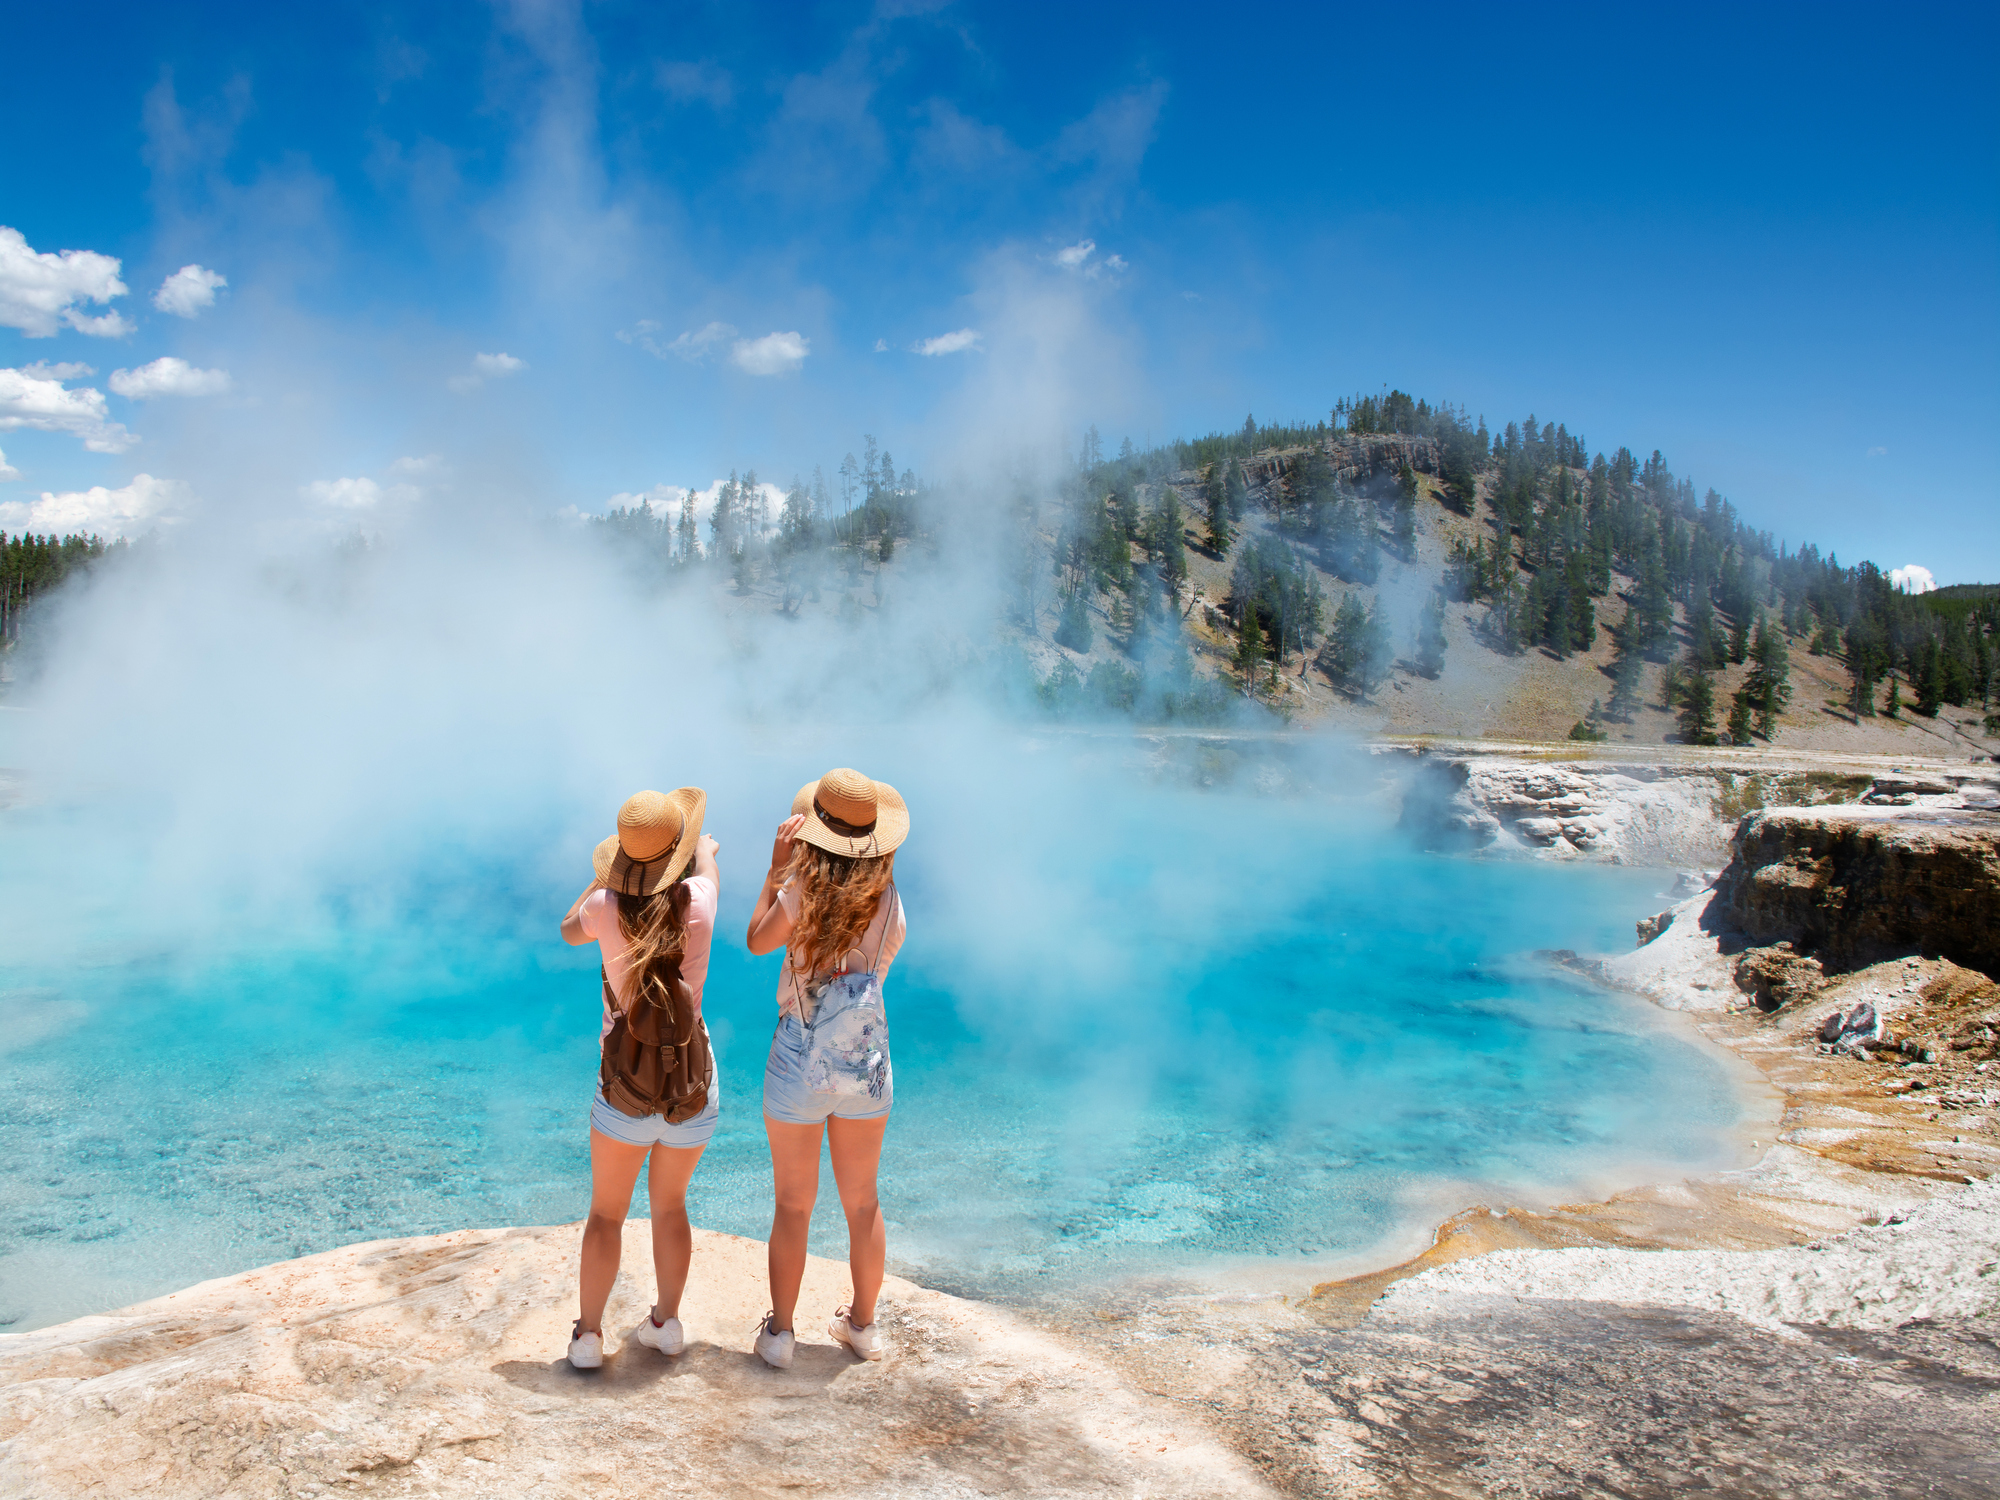 Airstream Launches Virtual Tour of Yellowstone National Park